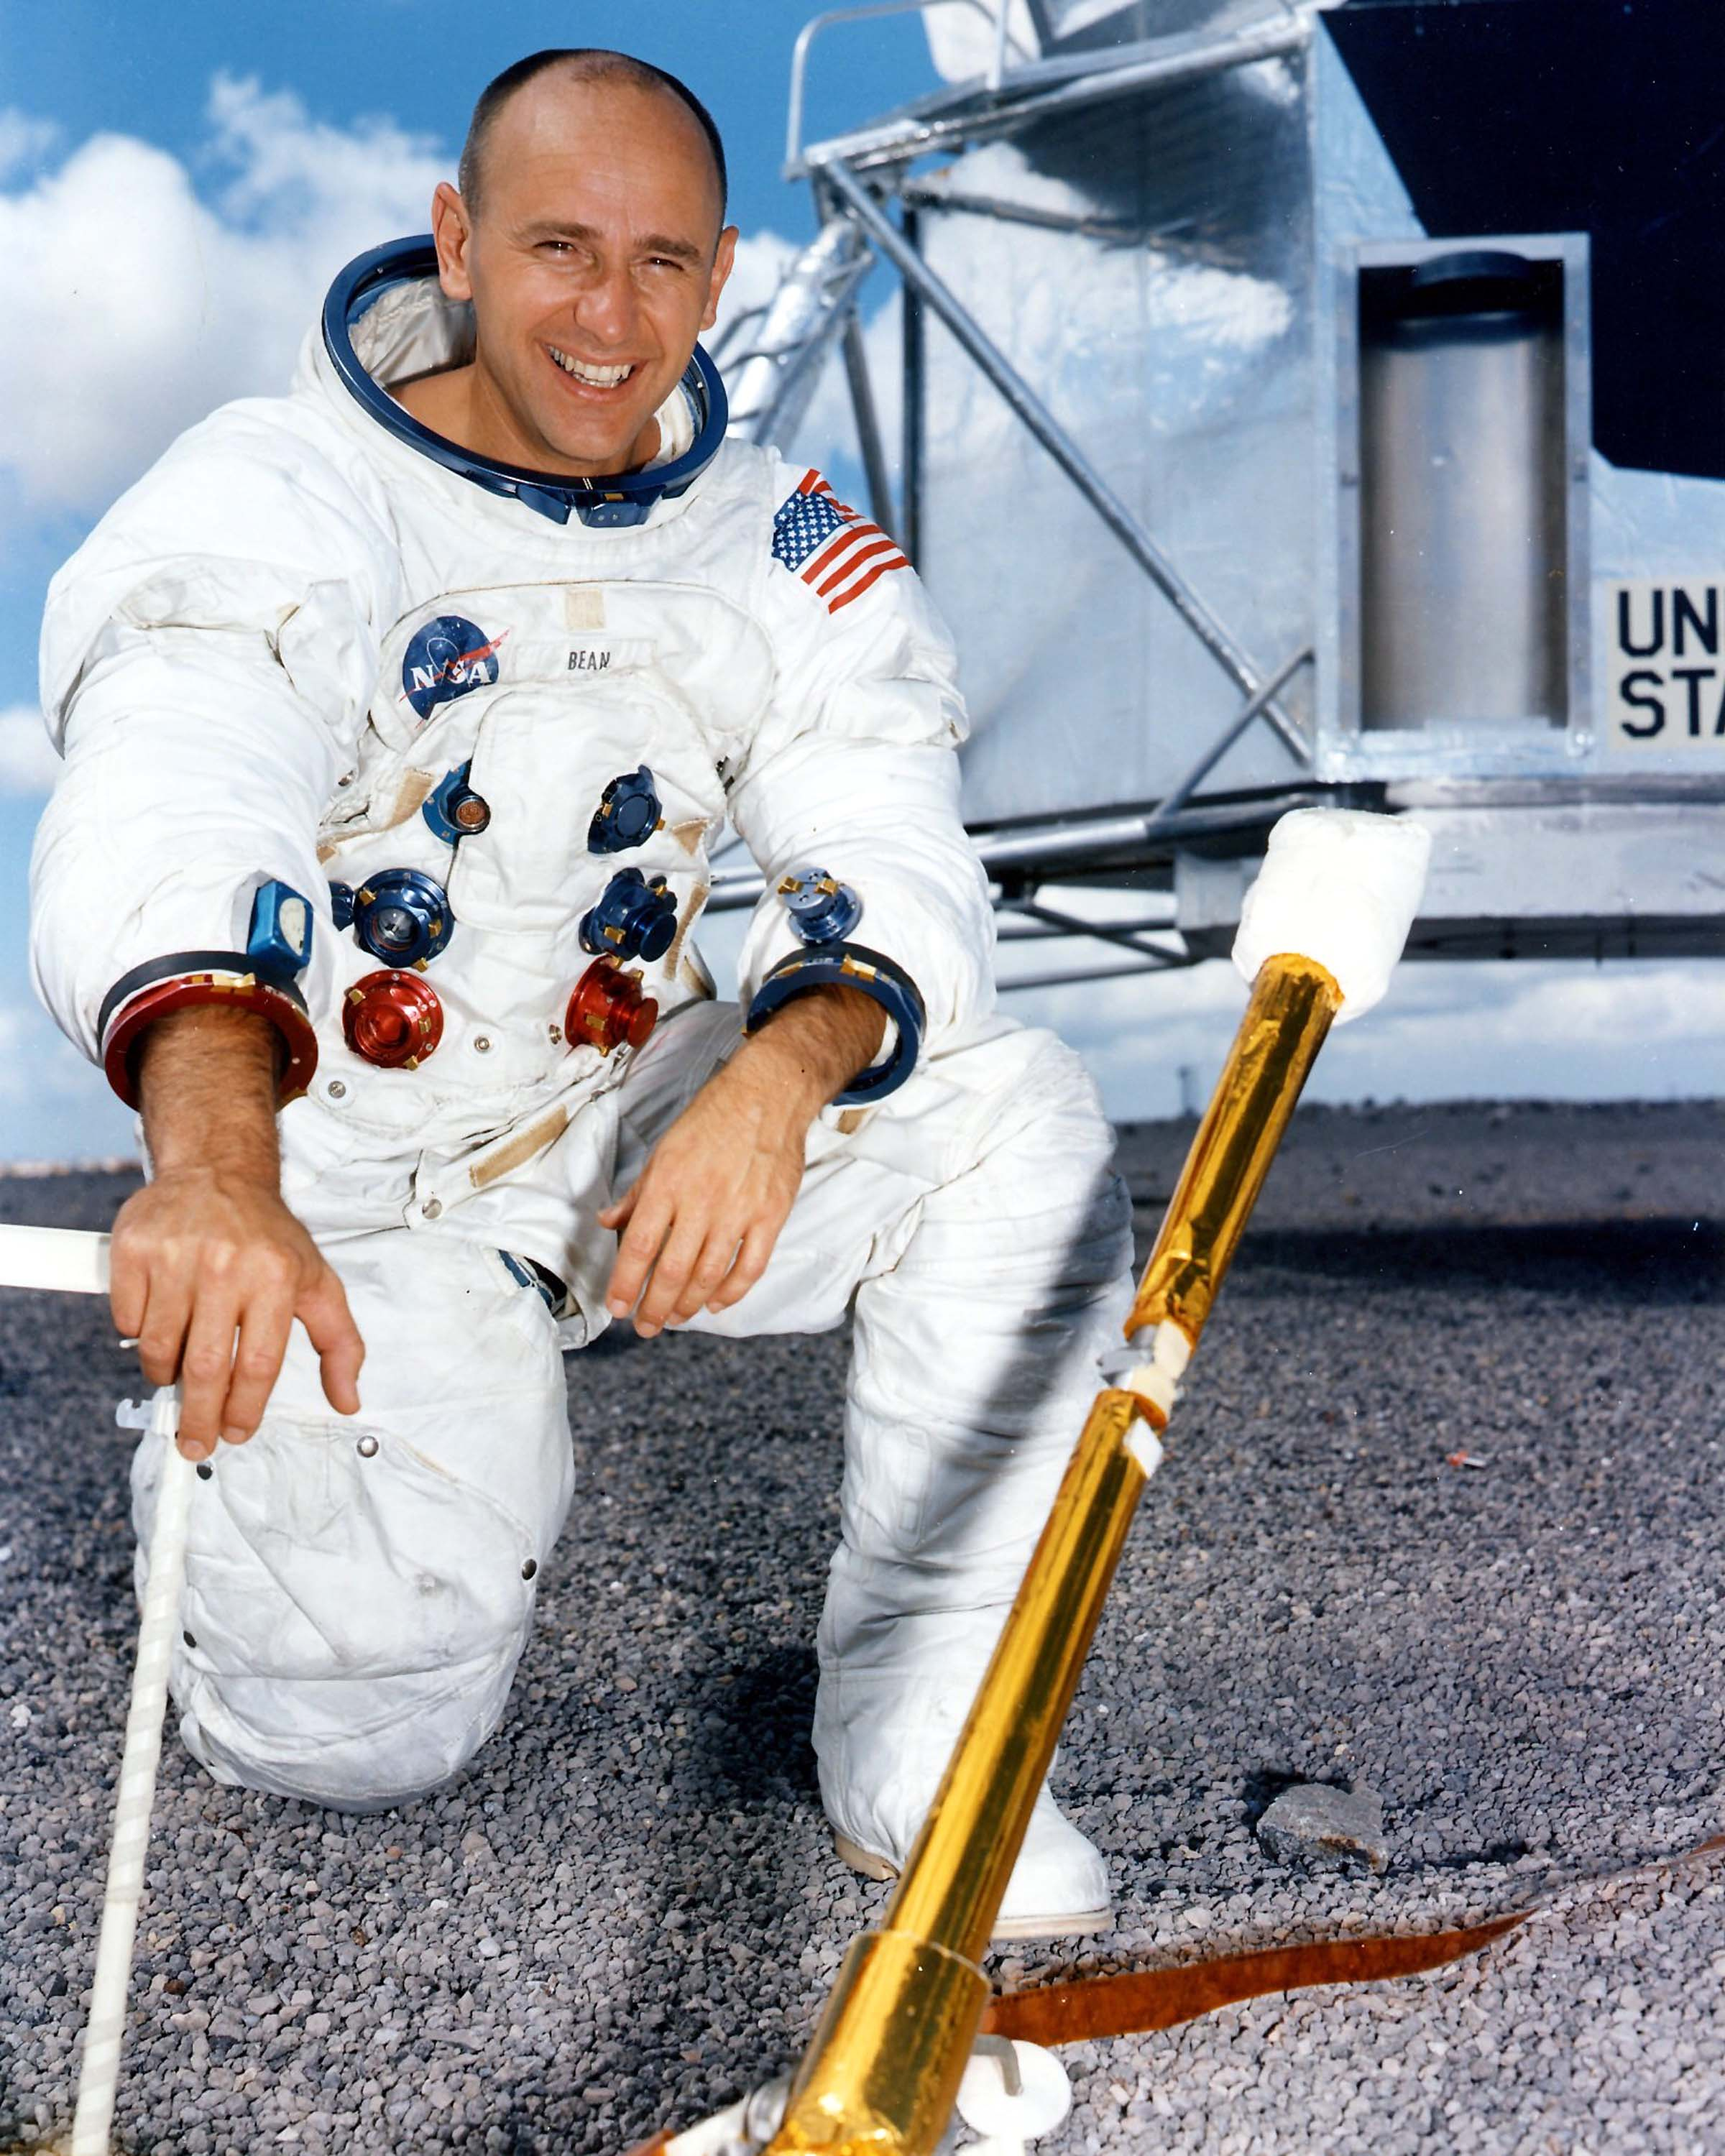 alan bean astronaut - photo #1